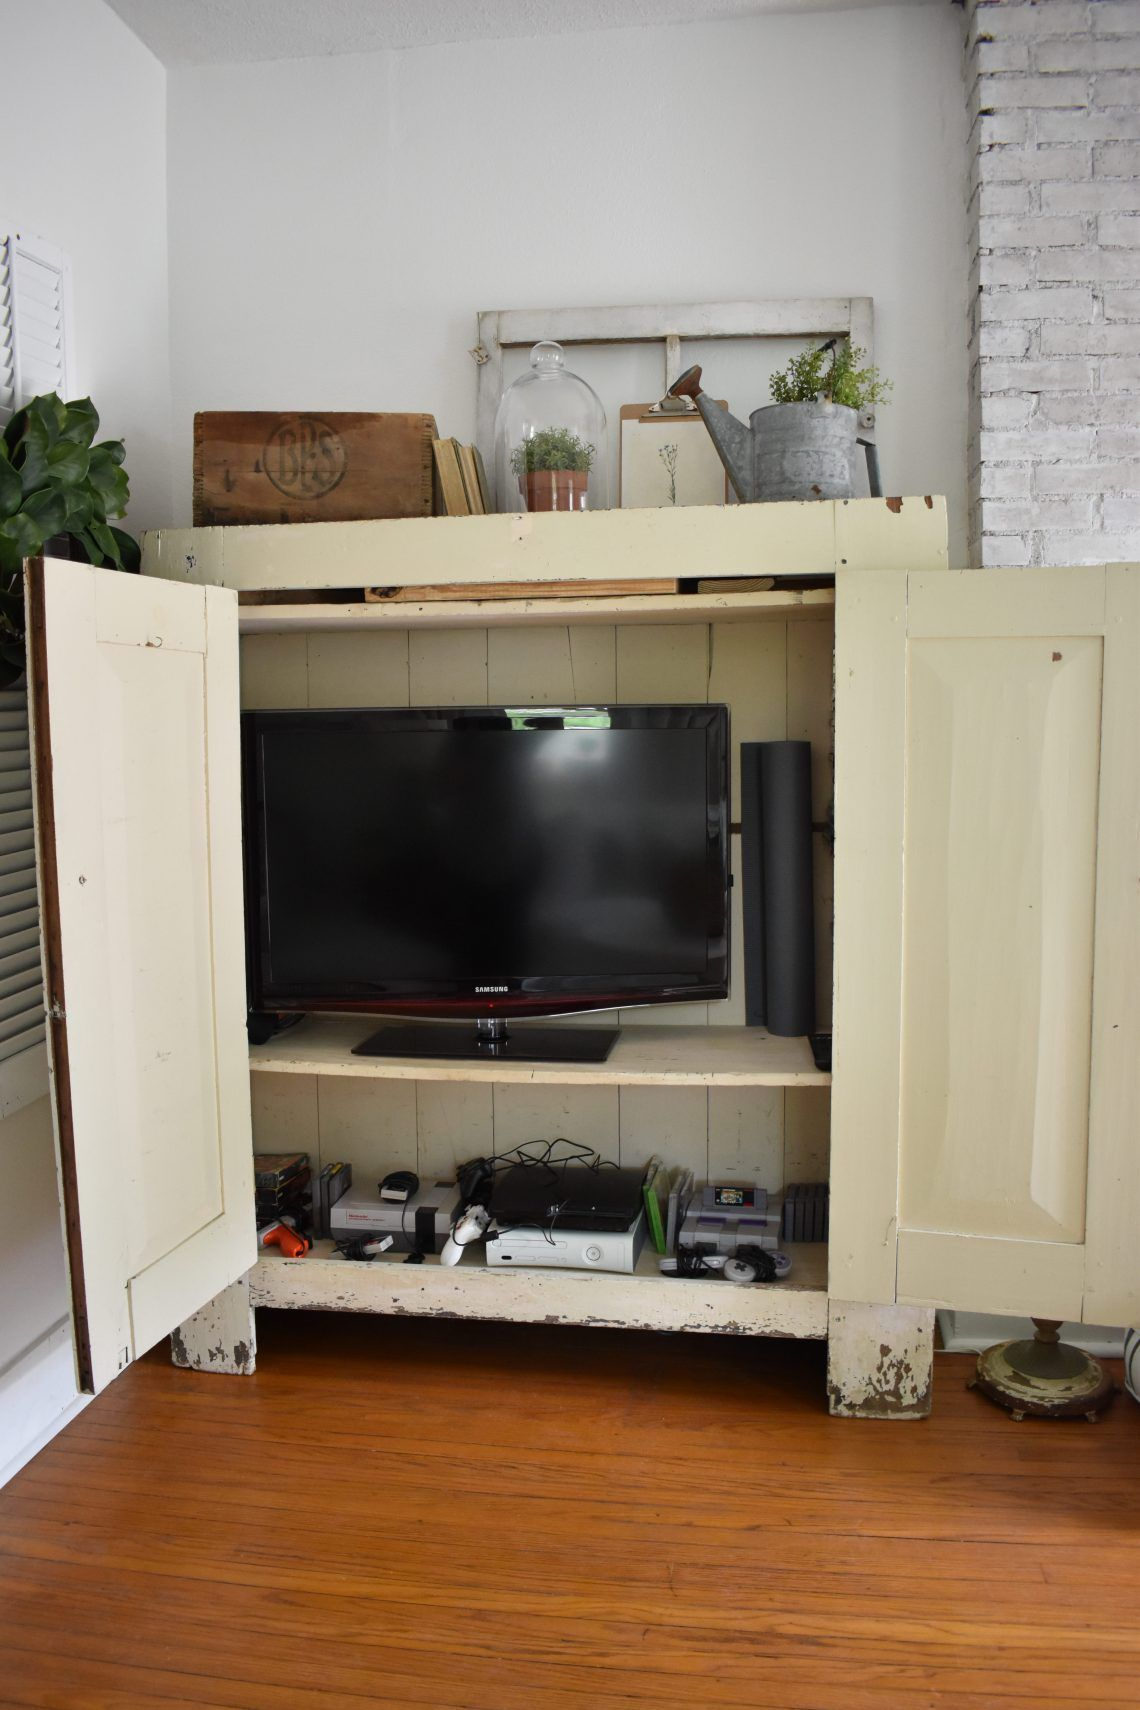 Repurposing an old cupboard into a media center midcounty journal